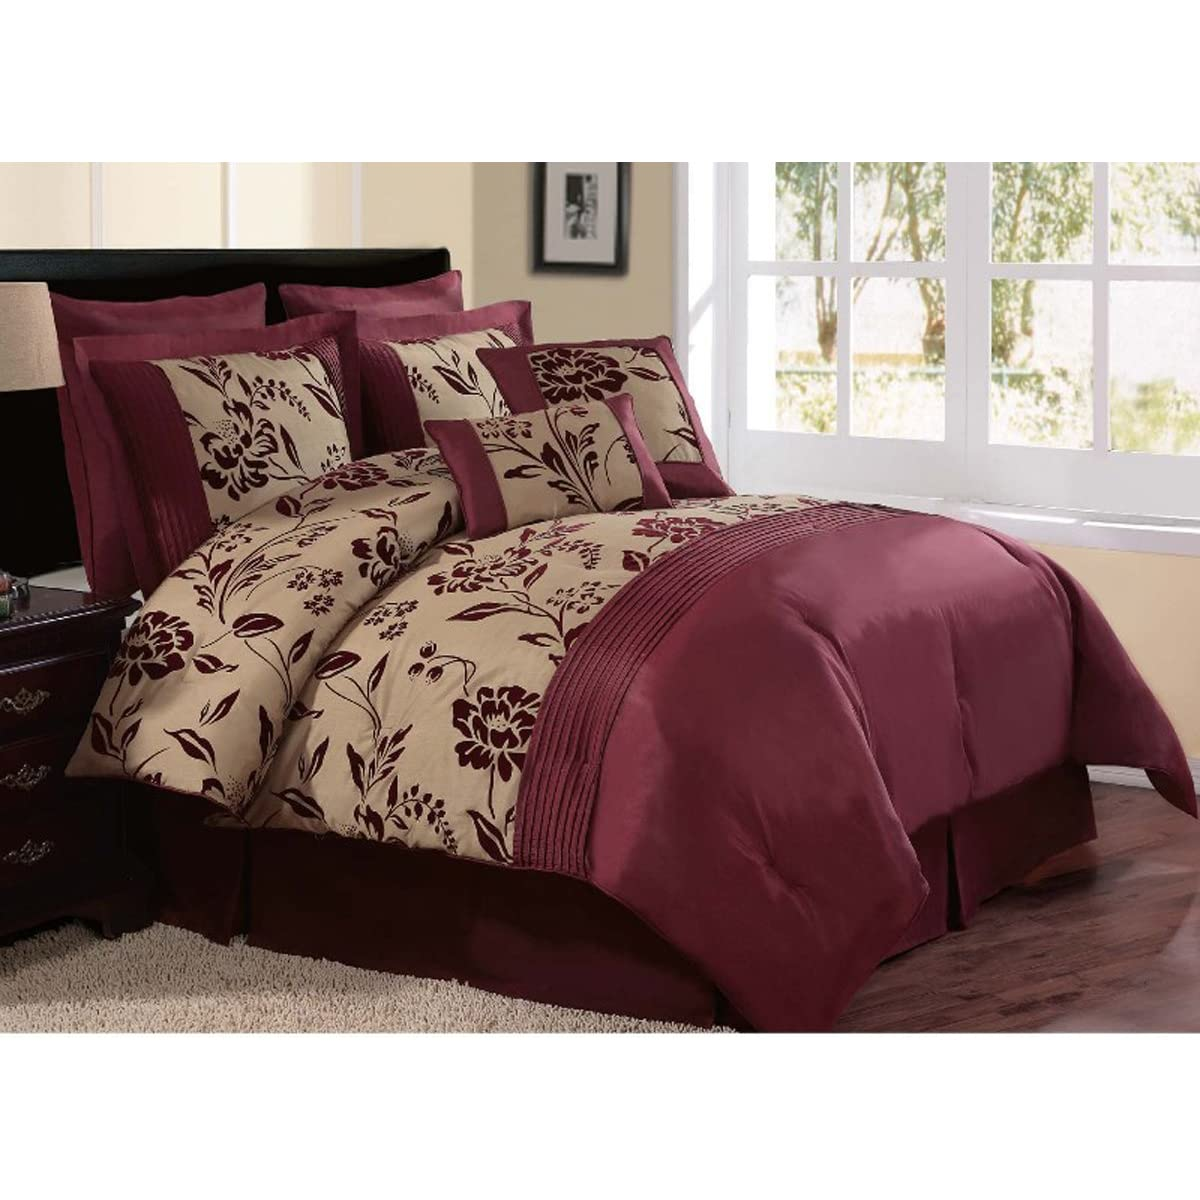 Burgundy And Gray Bedroom 3 Short Stories You Didn 39t Know About Maroon Bed